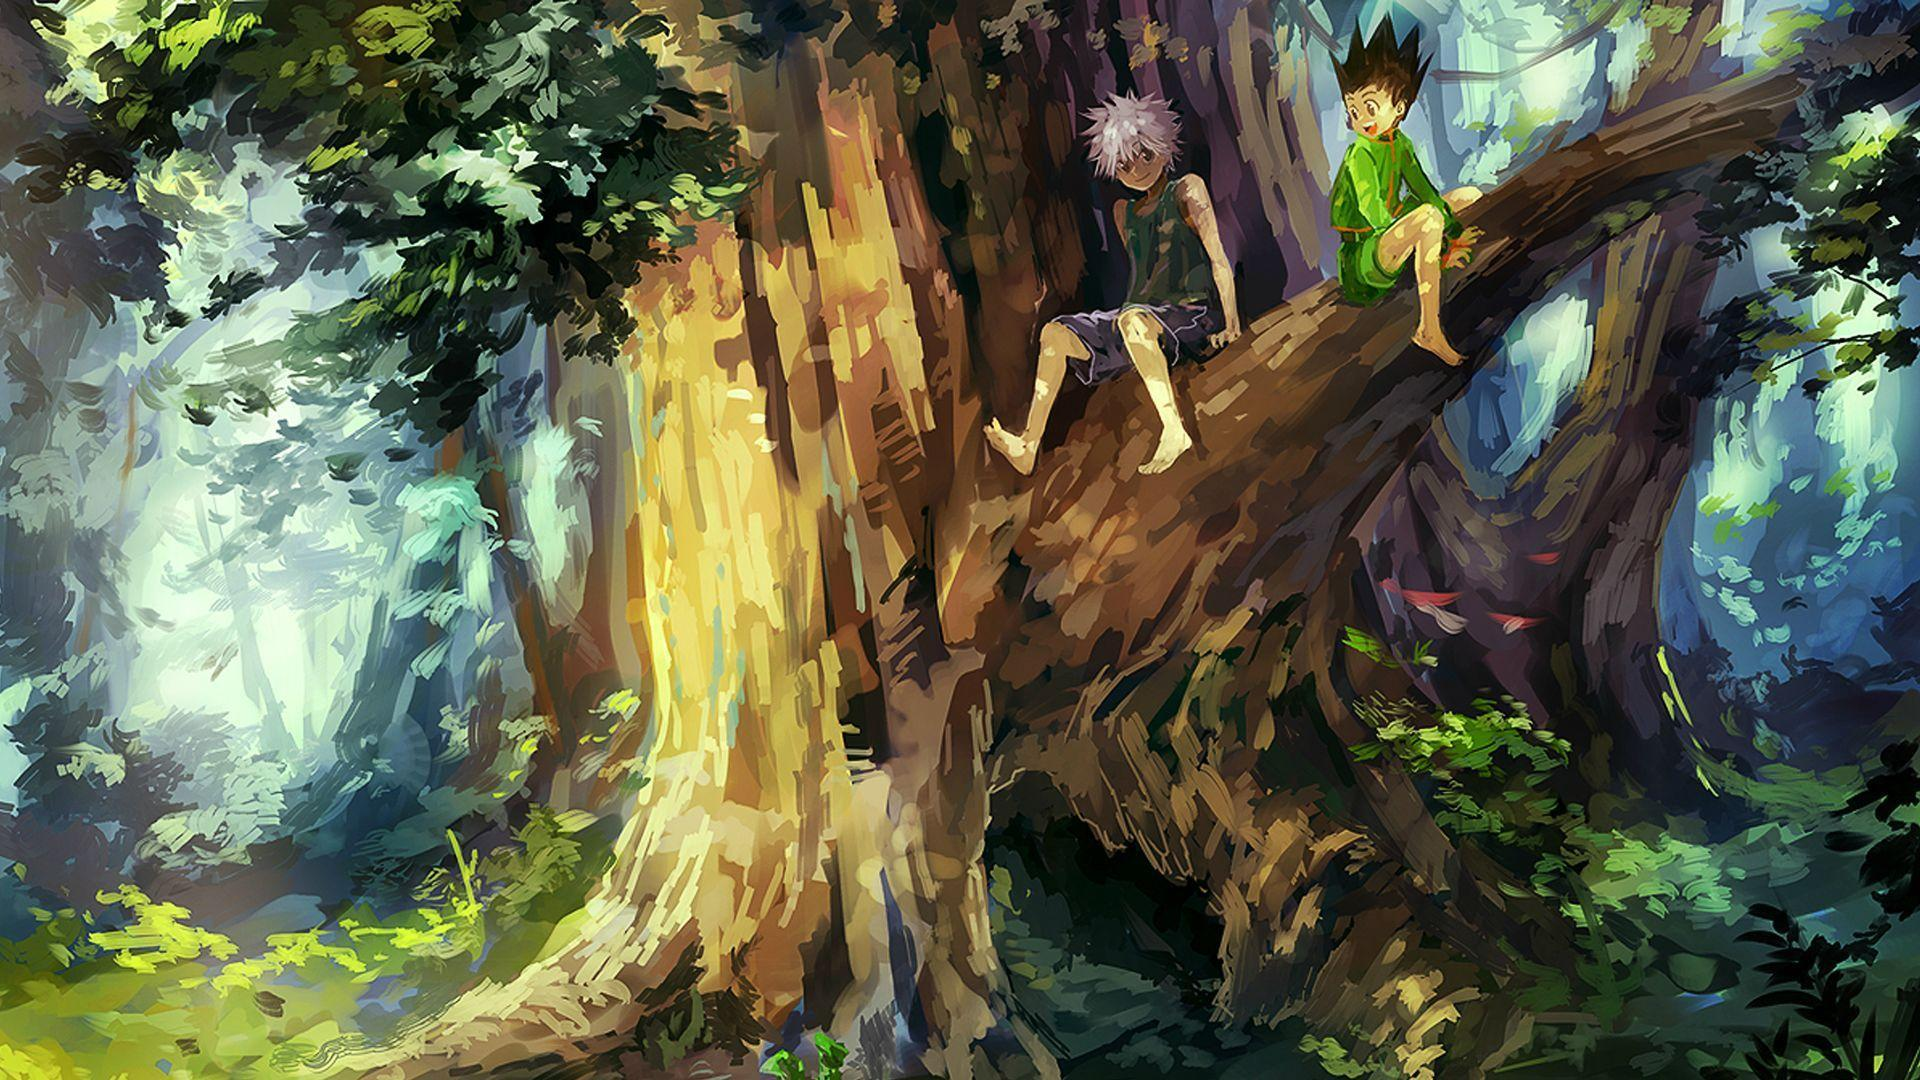 Make your device cooler and more beautiful. Hunter × Hunter Wallpapers - Wallpaper Cave